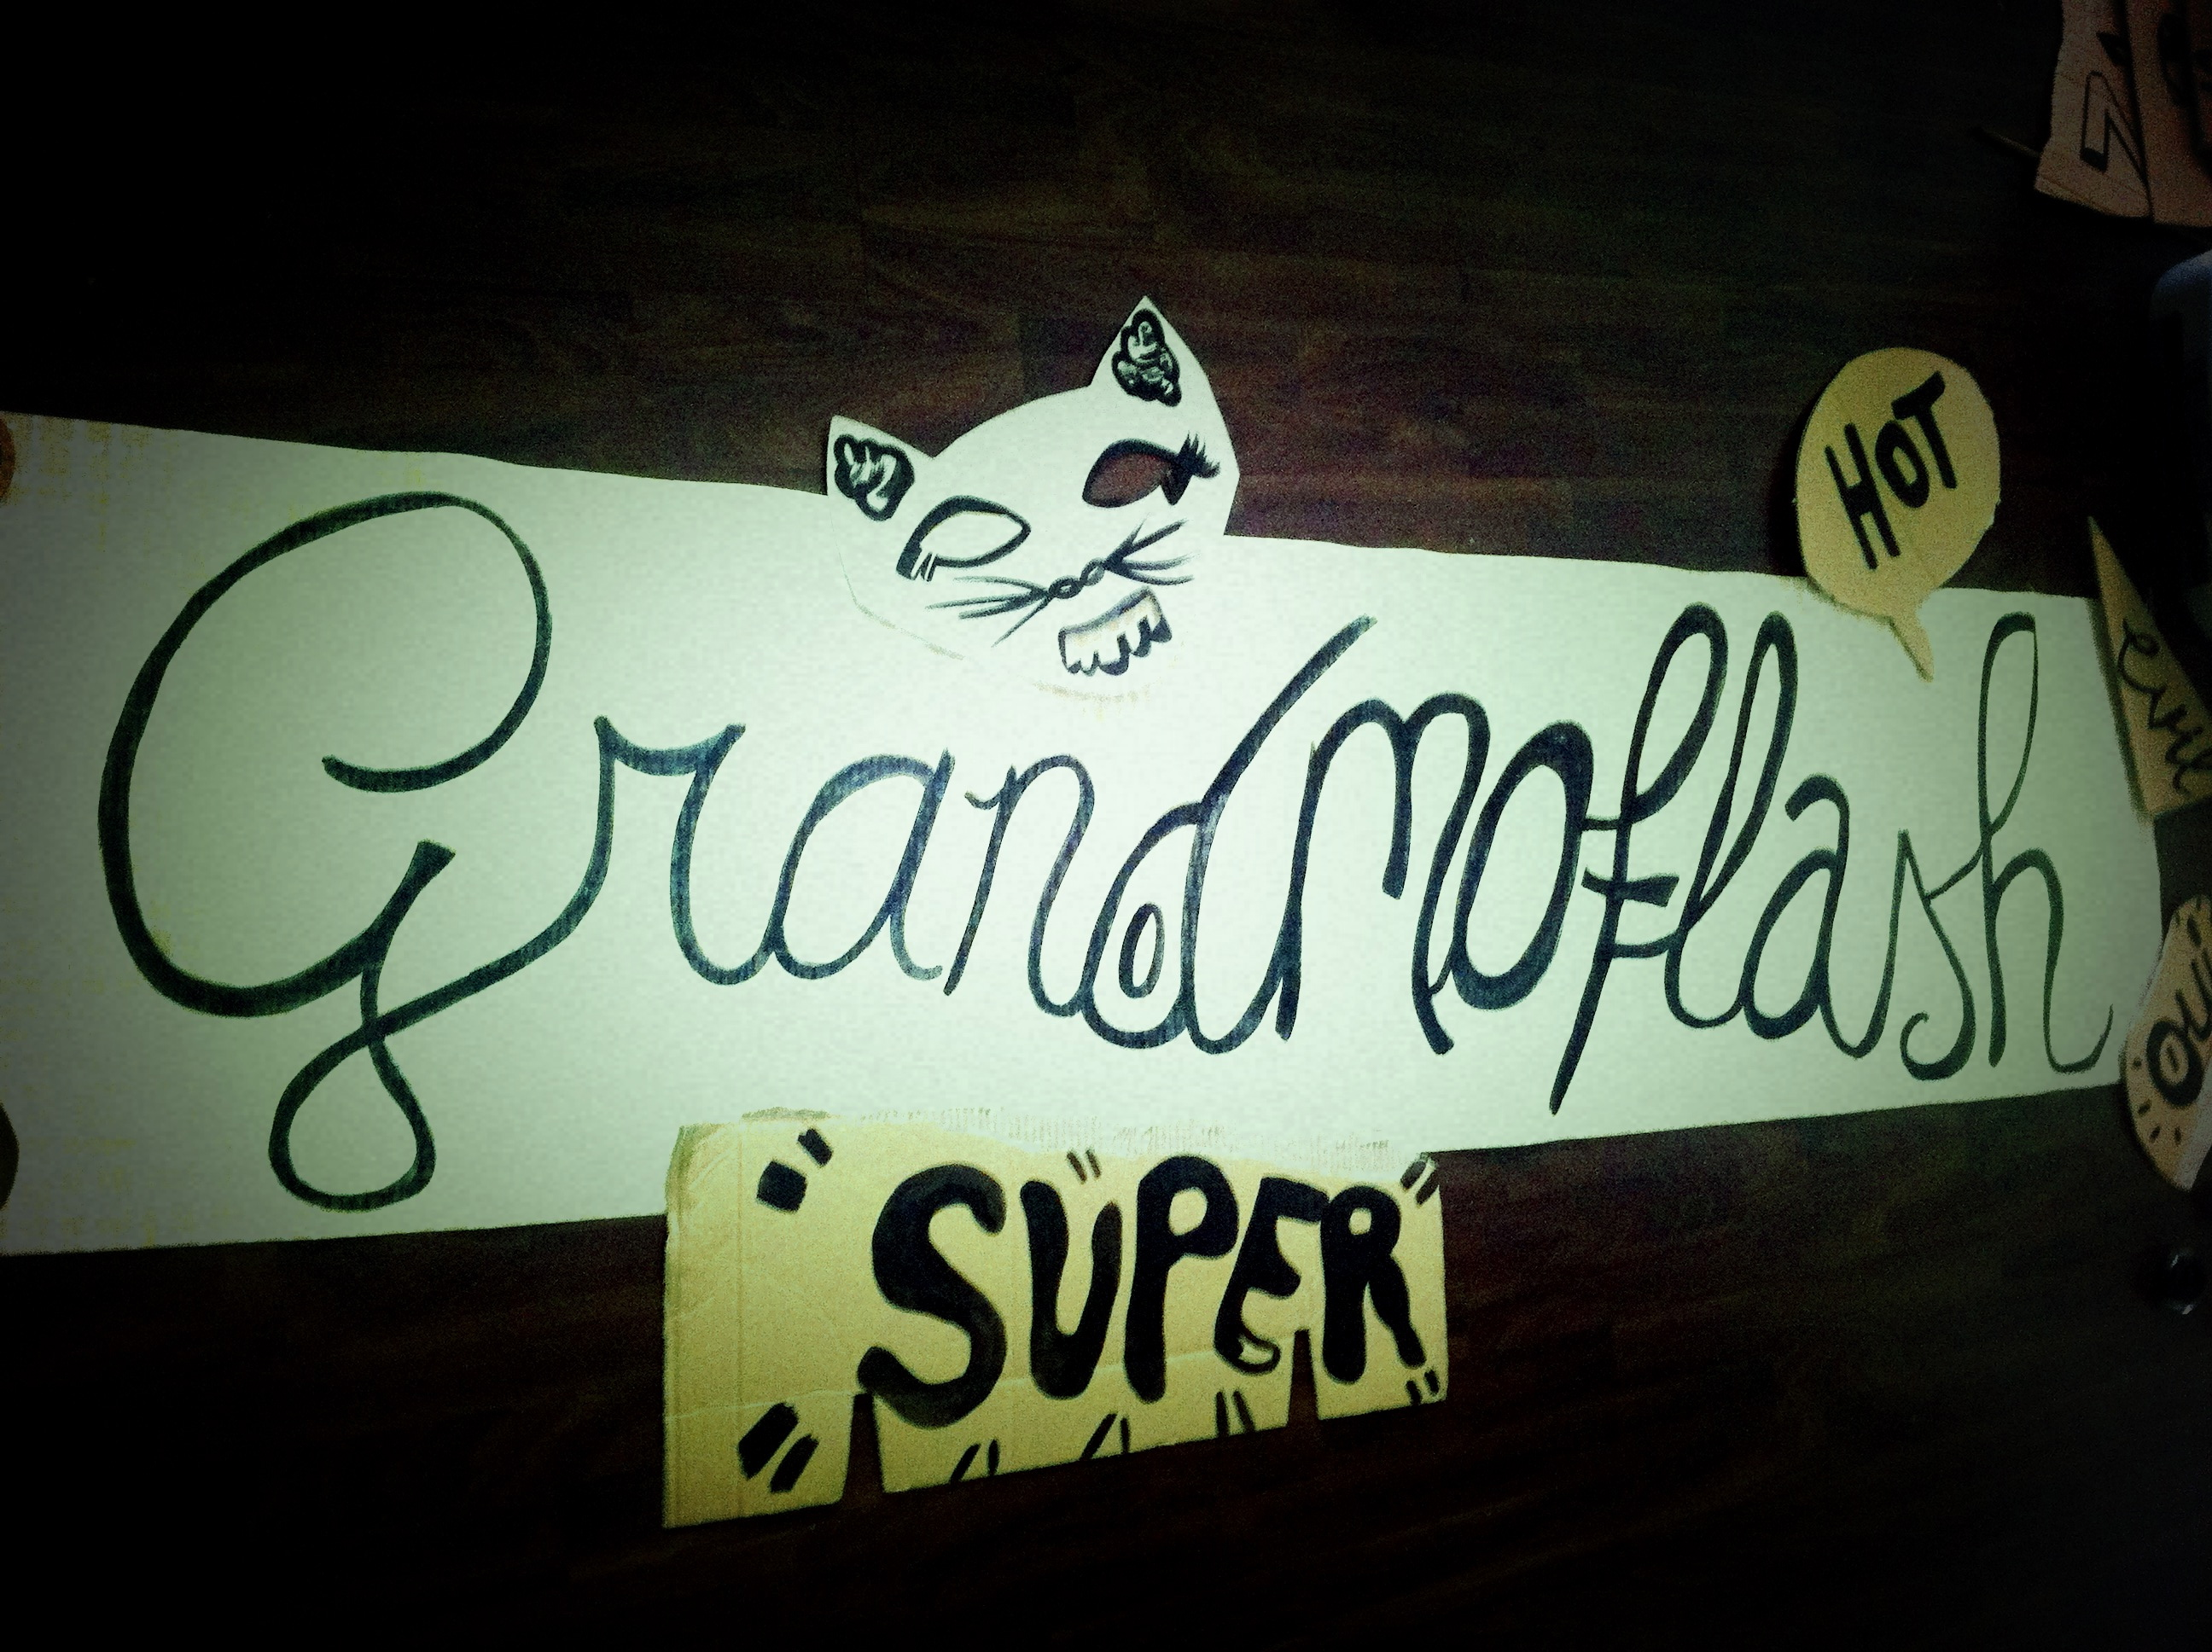 Grandmoflash MEow!